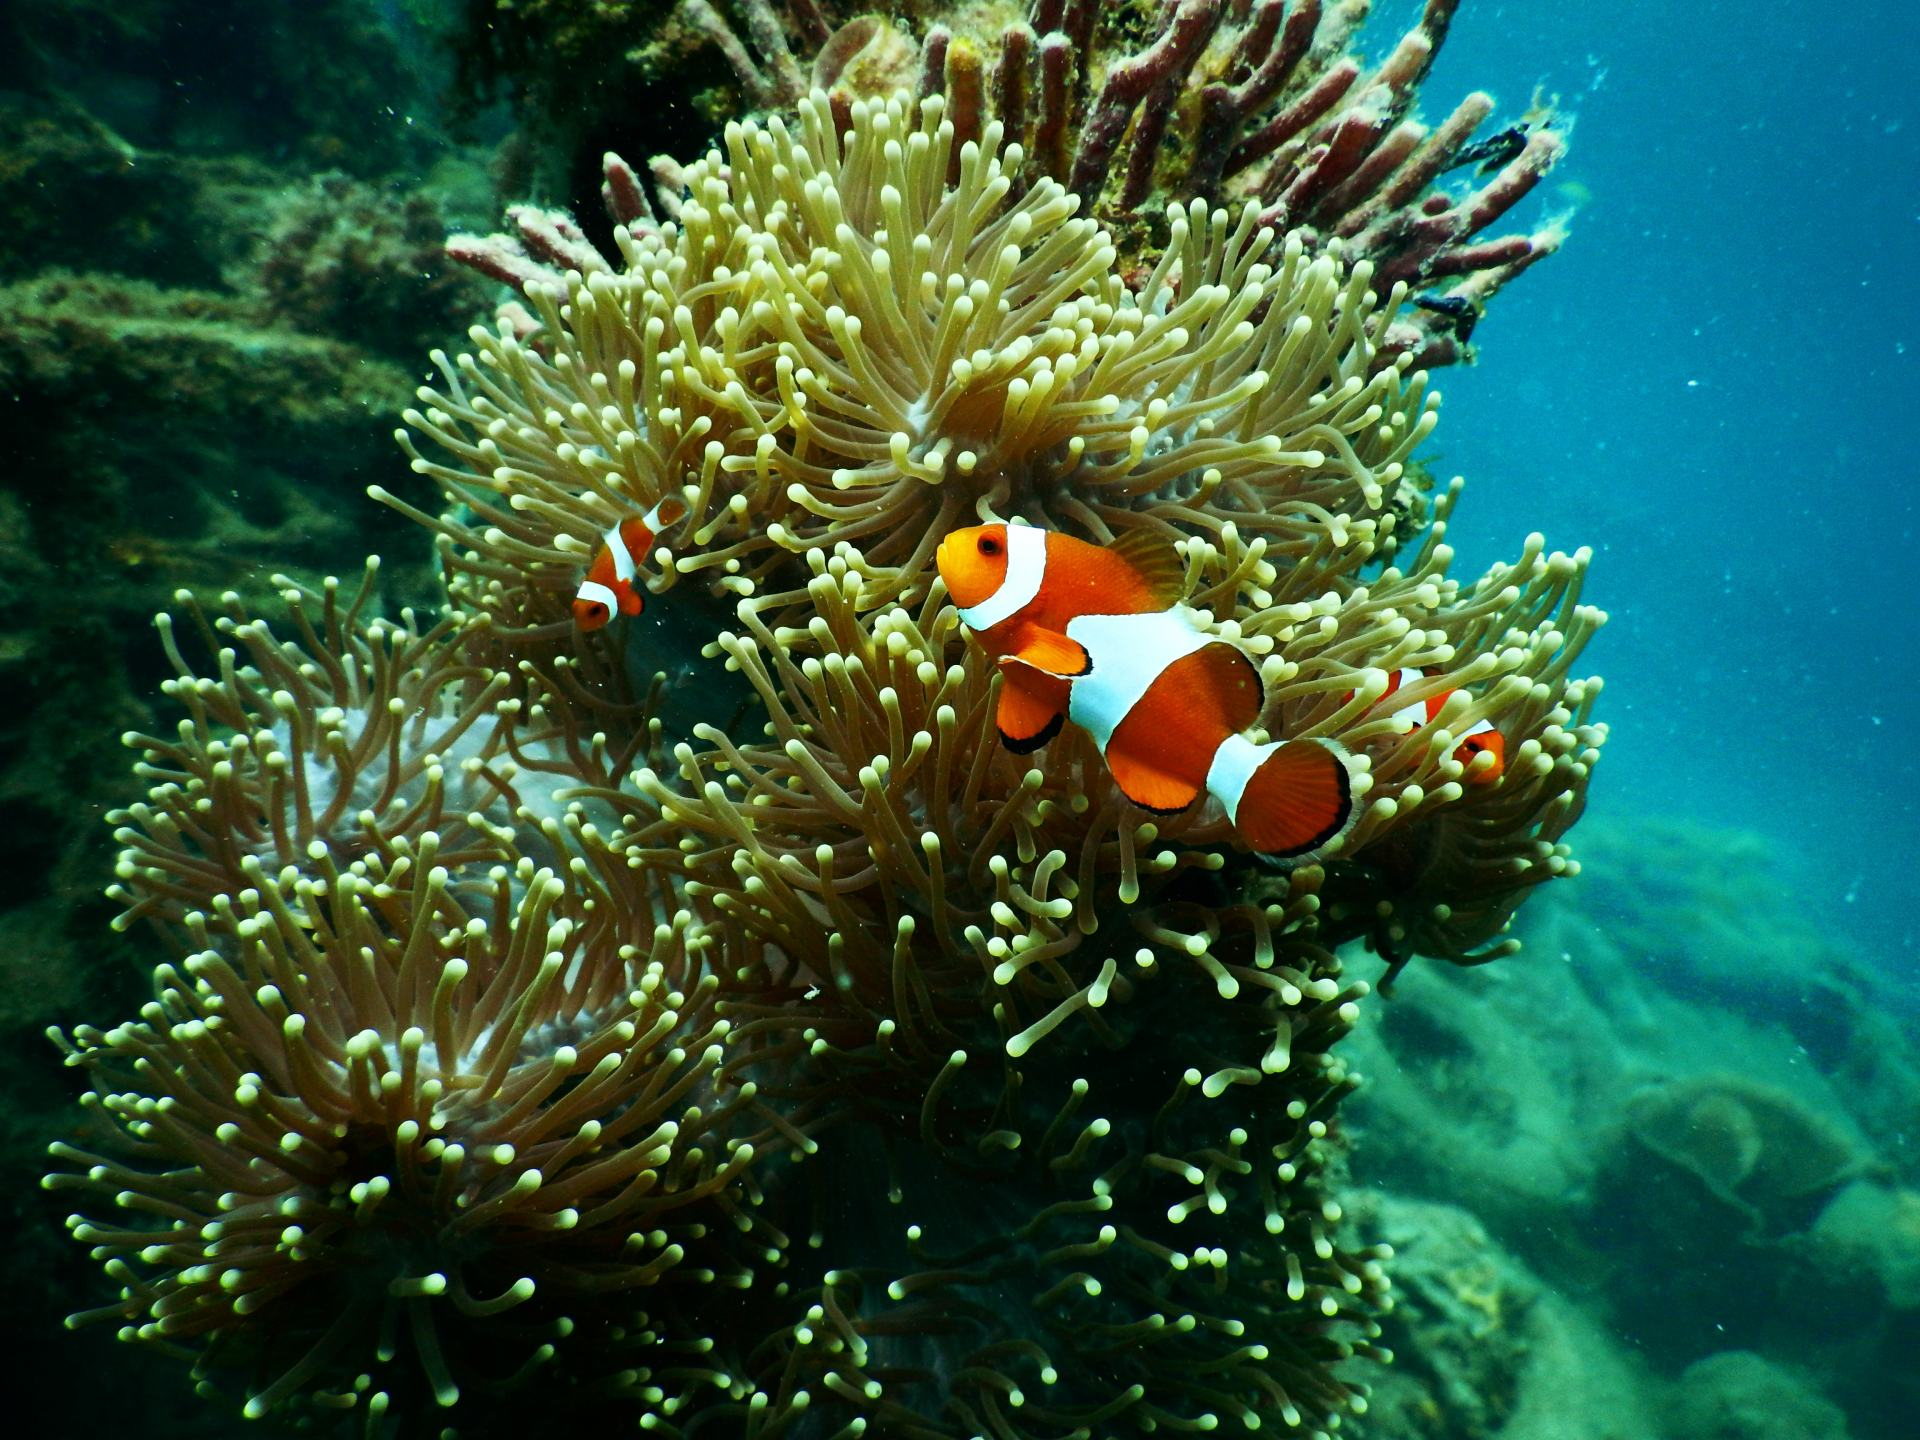 aquarium-aquatic-clown-fish-1125979.jpg